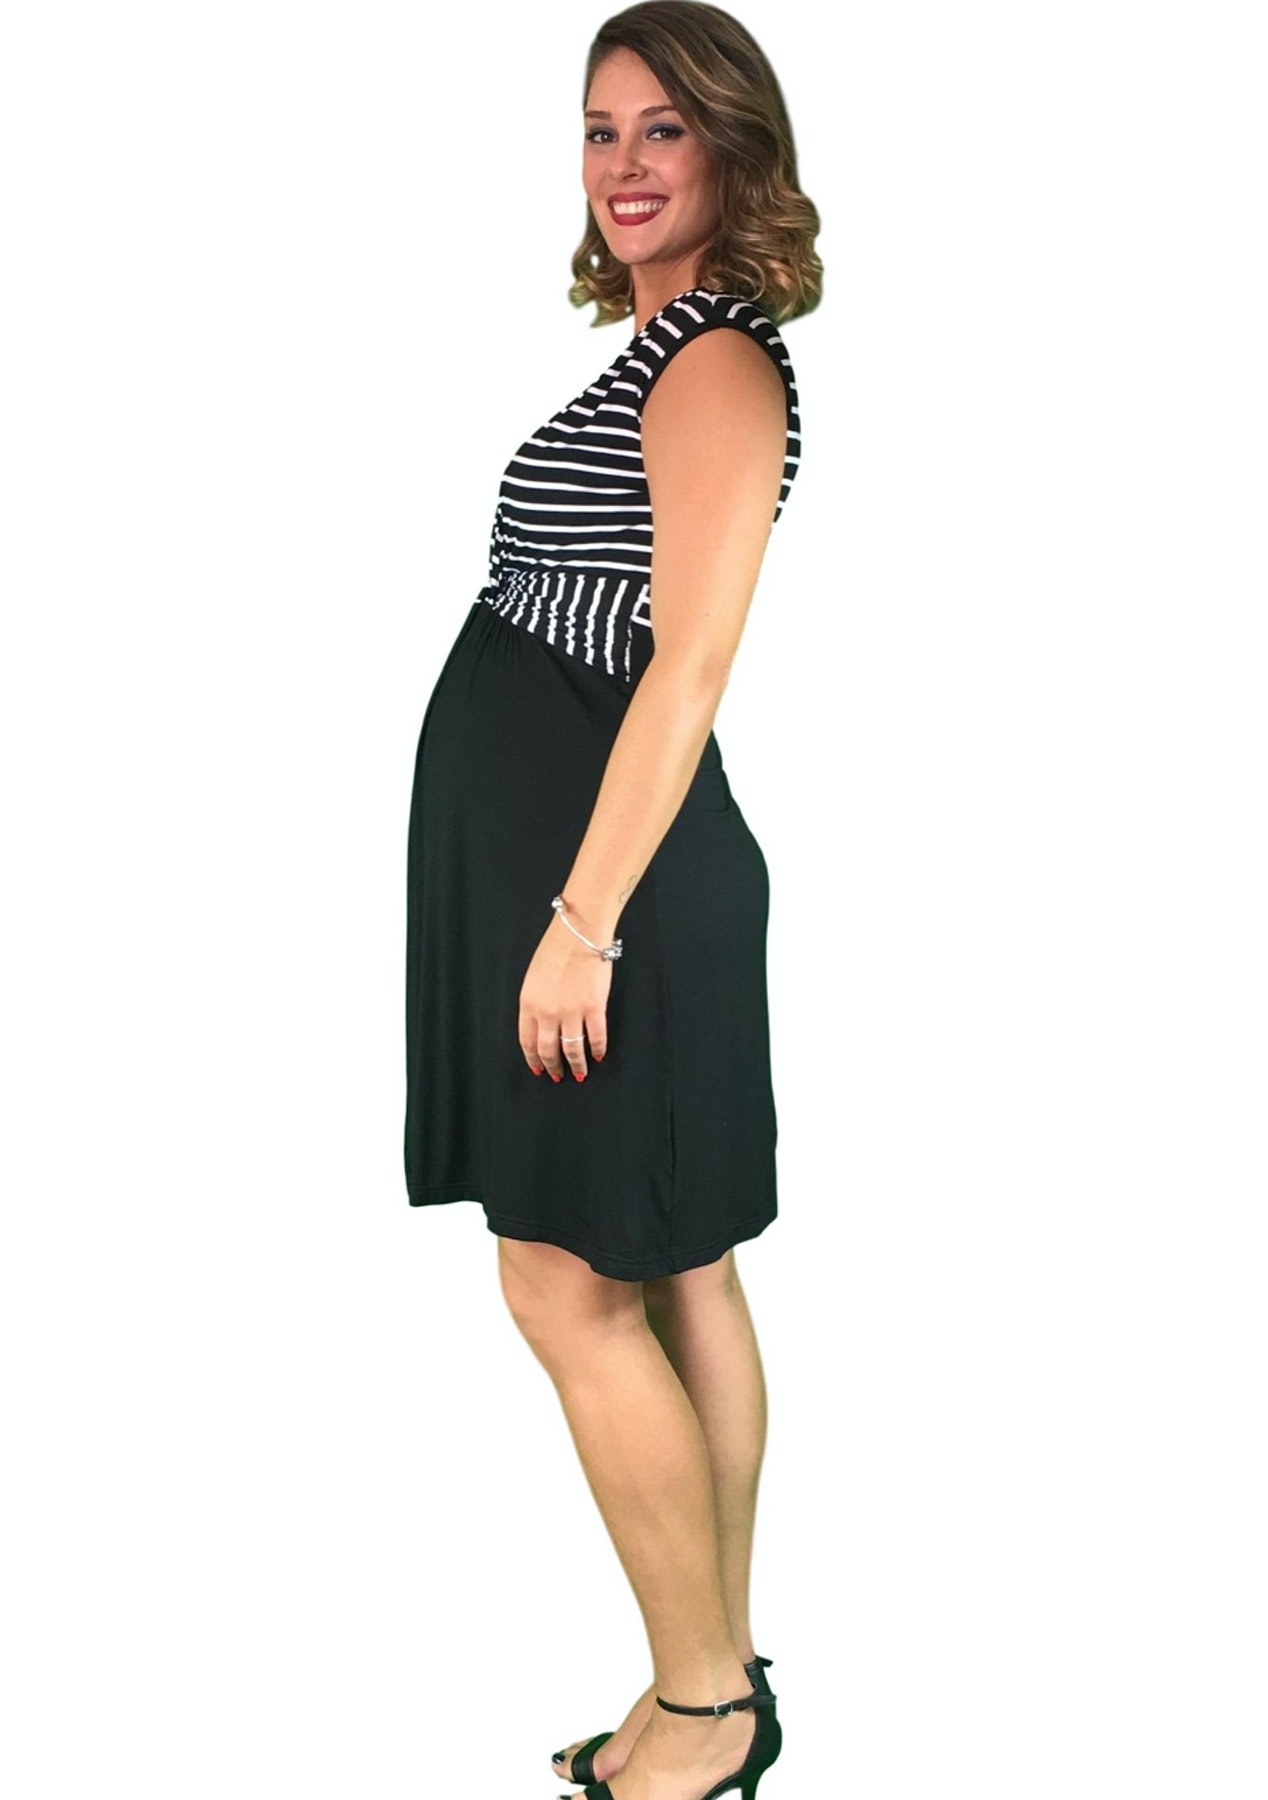 77a8343694a4e Maternity Clothes Online - Lilly & Me Cotton Crossover Maternity & Nursing  Dress - Striped - Rummage Rack Clear Out - Onceit